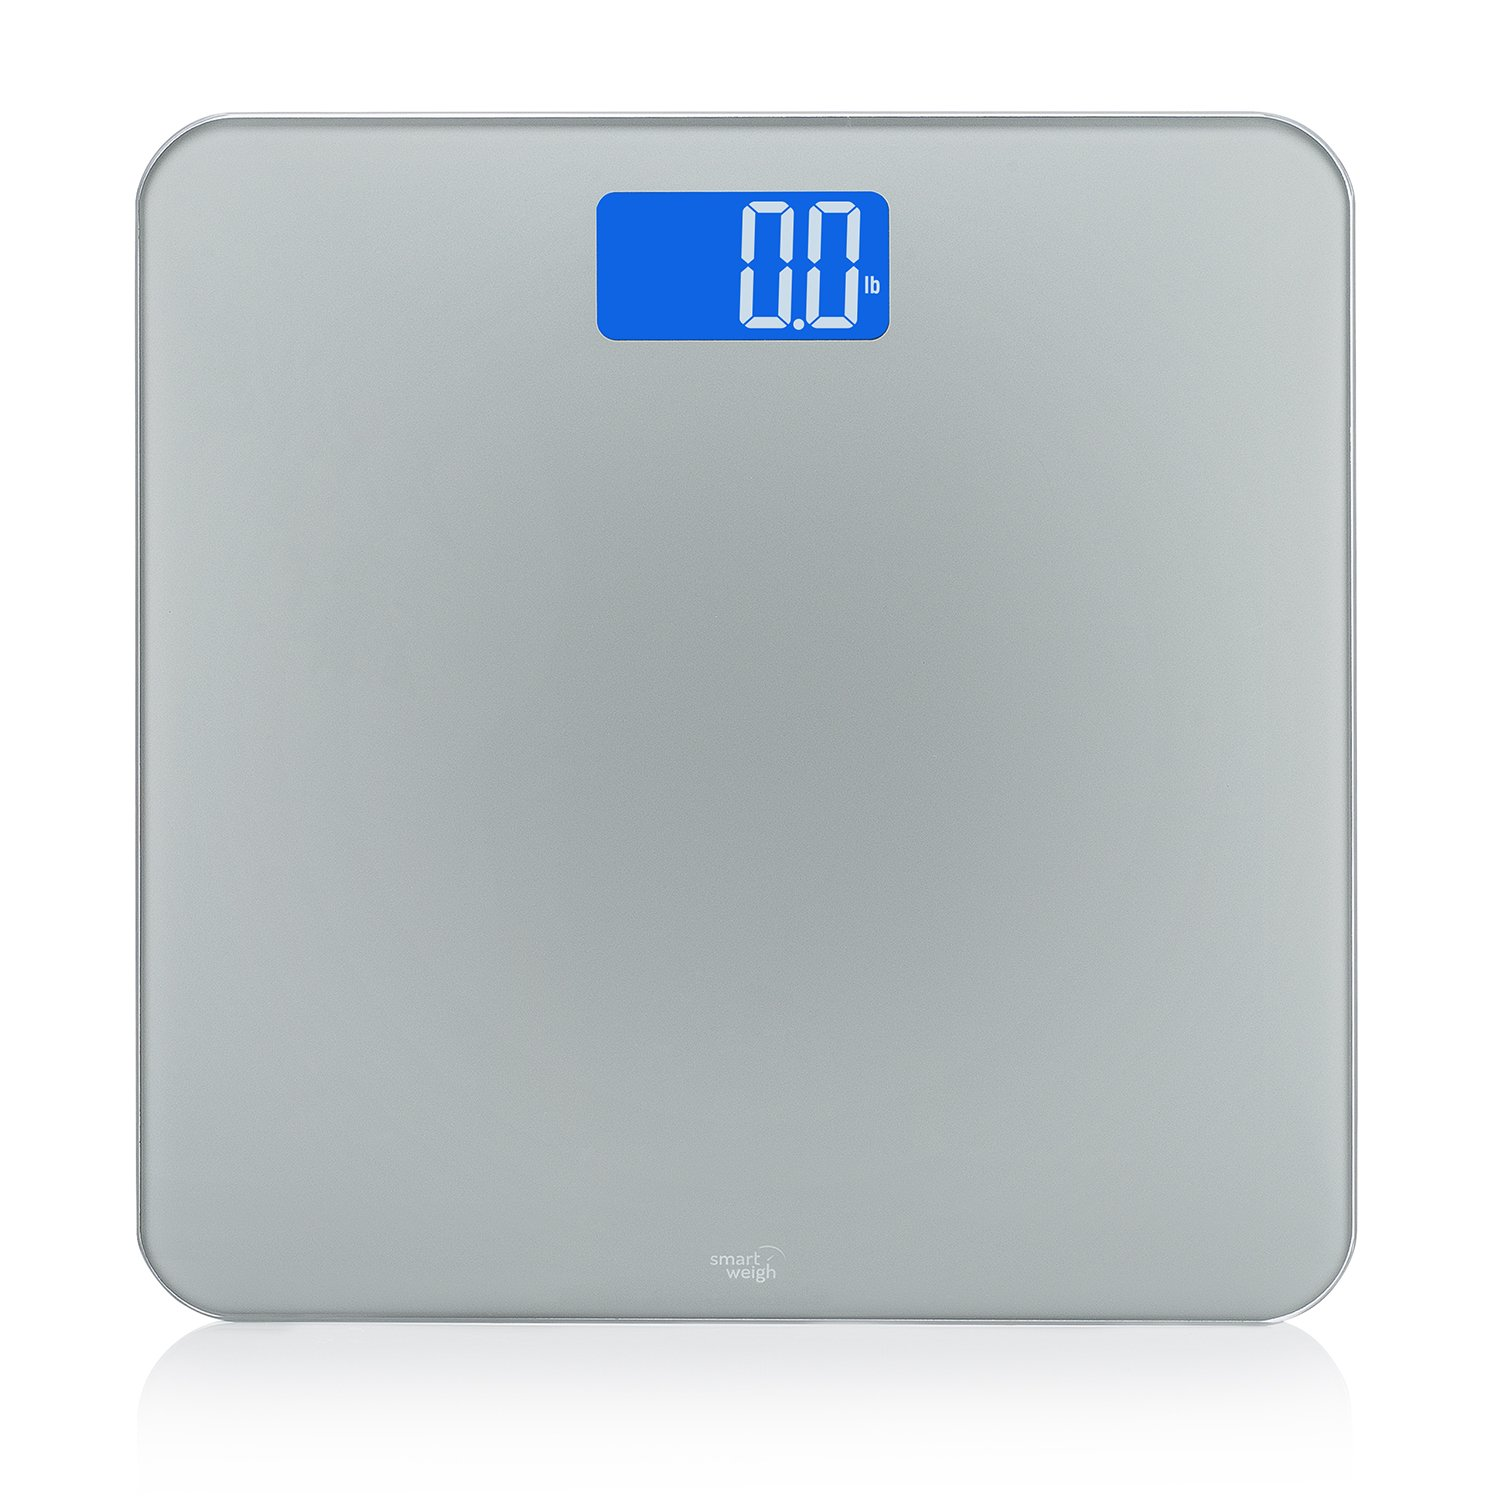 Smart Weigh Digital Body Weight Bathroom Scale with Smart Step-On Technology - Non-Slip - Modern Design –Accurate Weight Measurements,Backlit Large Display 440lbs - Grey